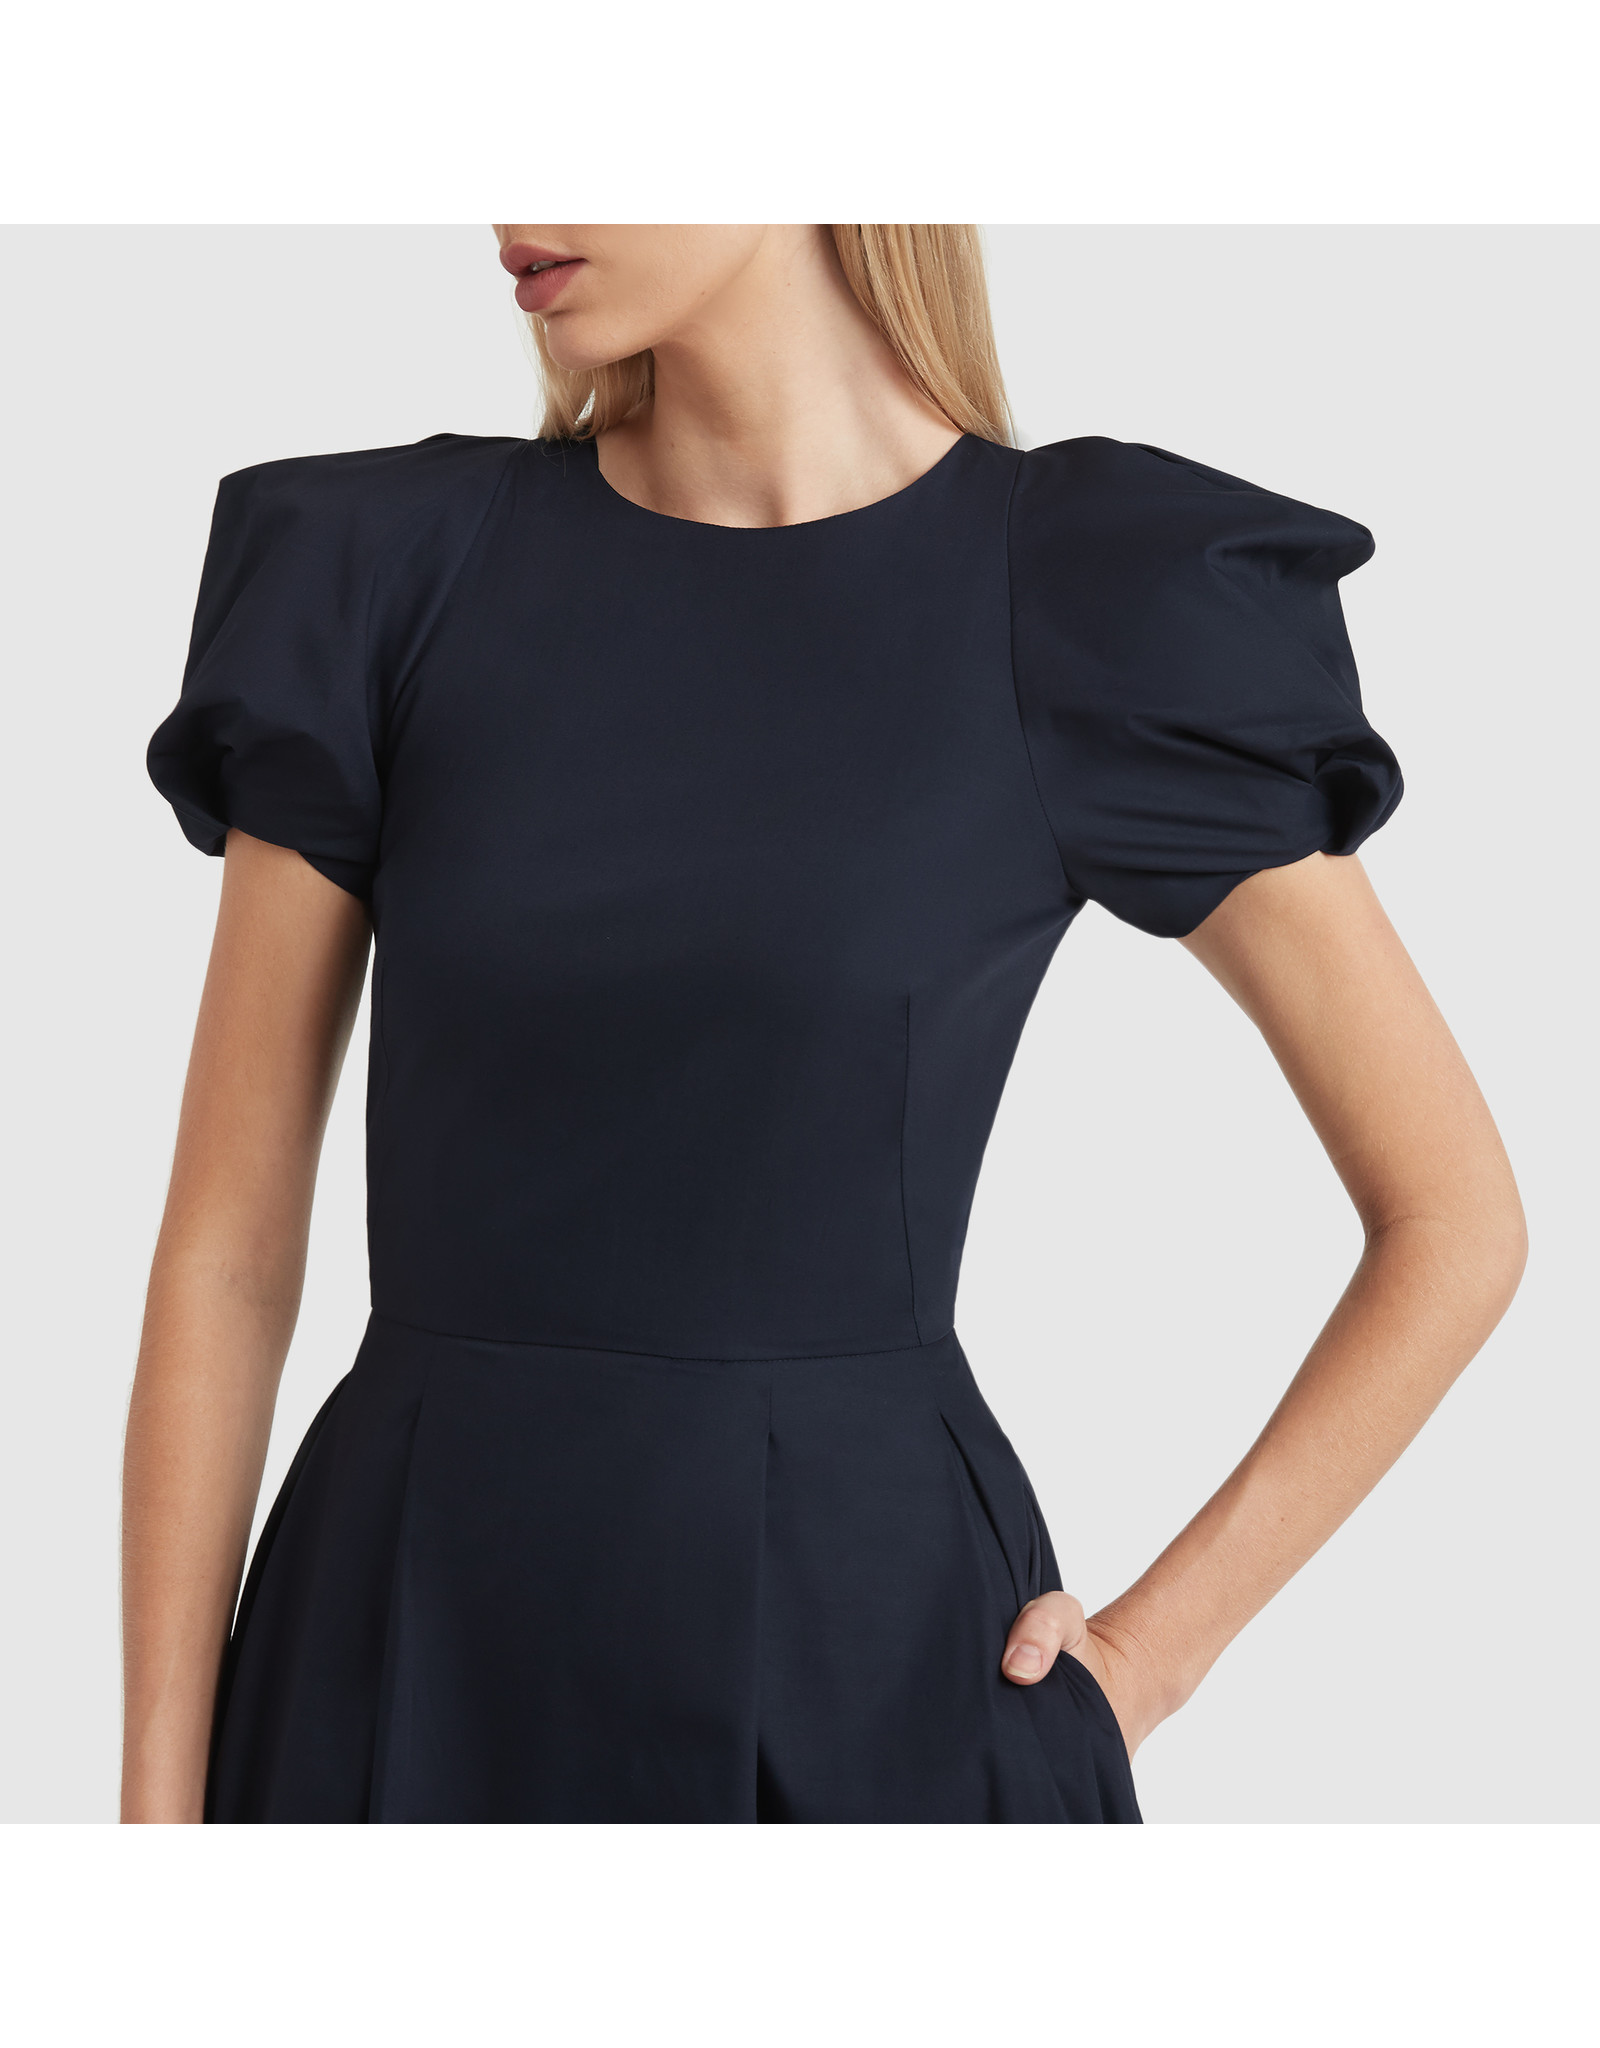 G. Label Elle Rounded Sleeve Mid Length Dress (Color: Navy, Size: 4)